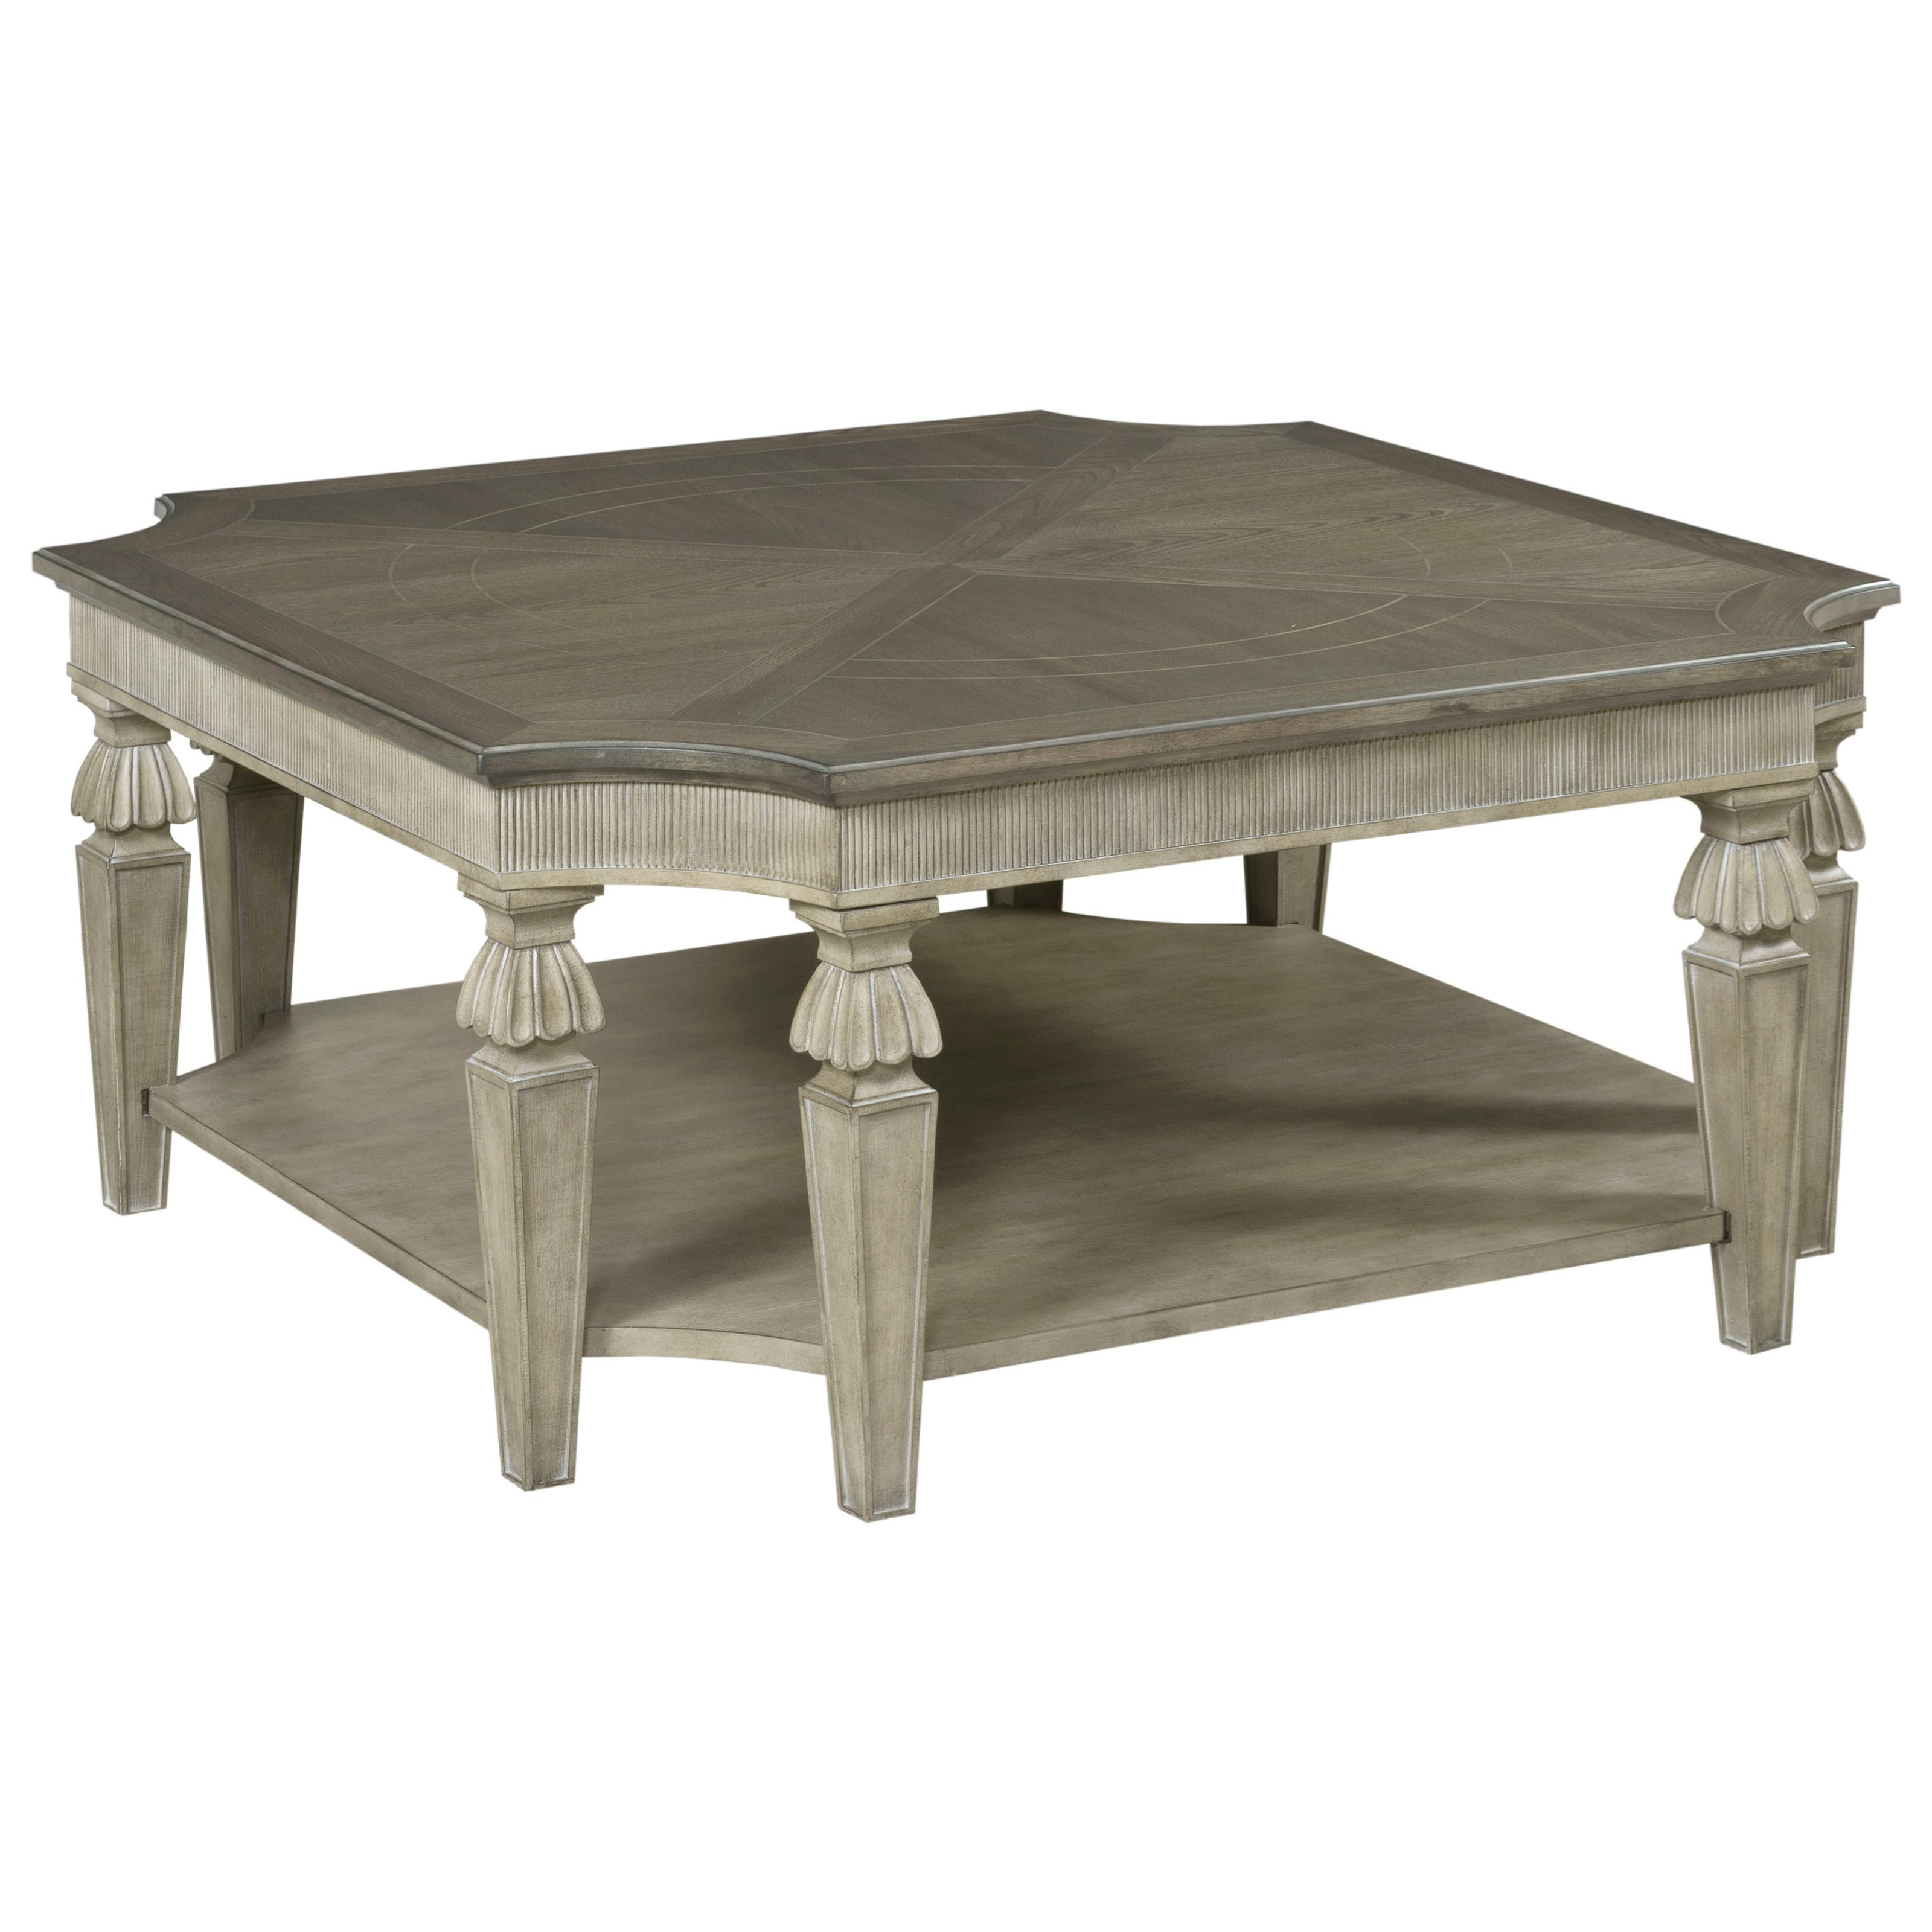 Savona Dorothea Square Cocktail Table by American Drew at Johnny Janosik